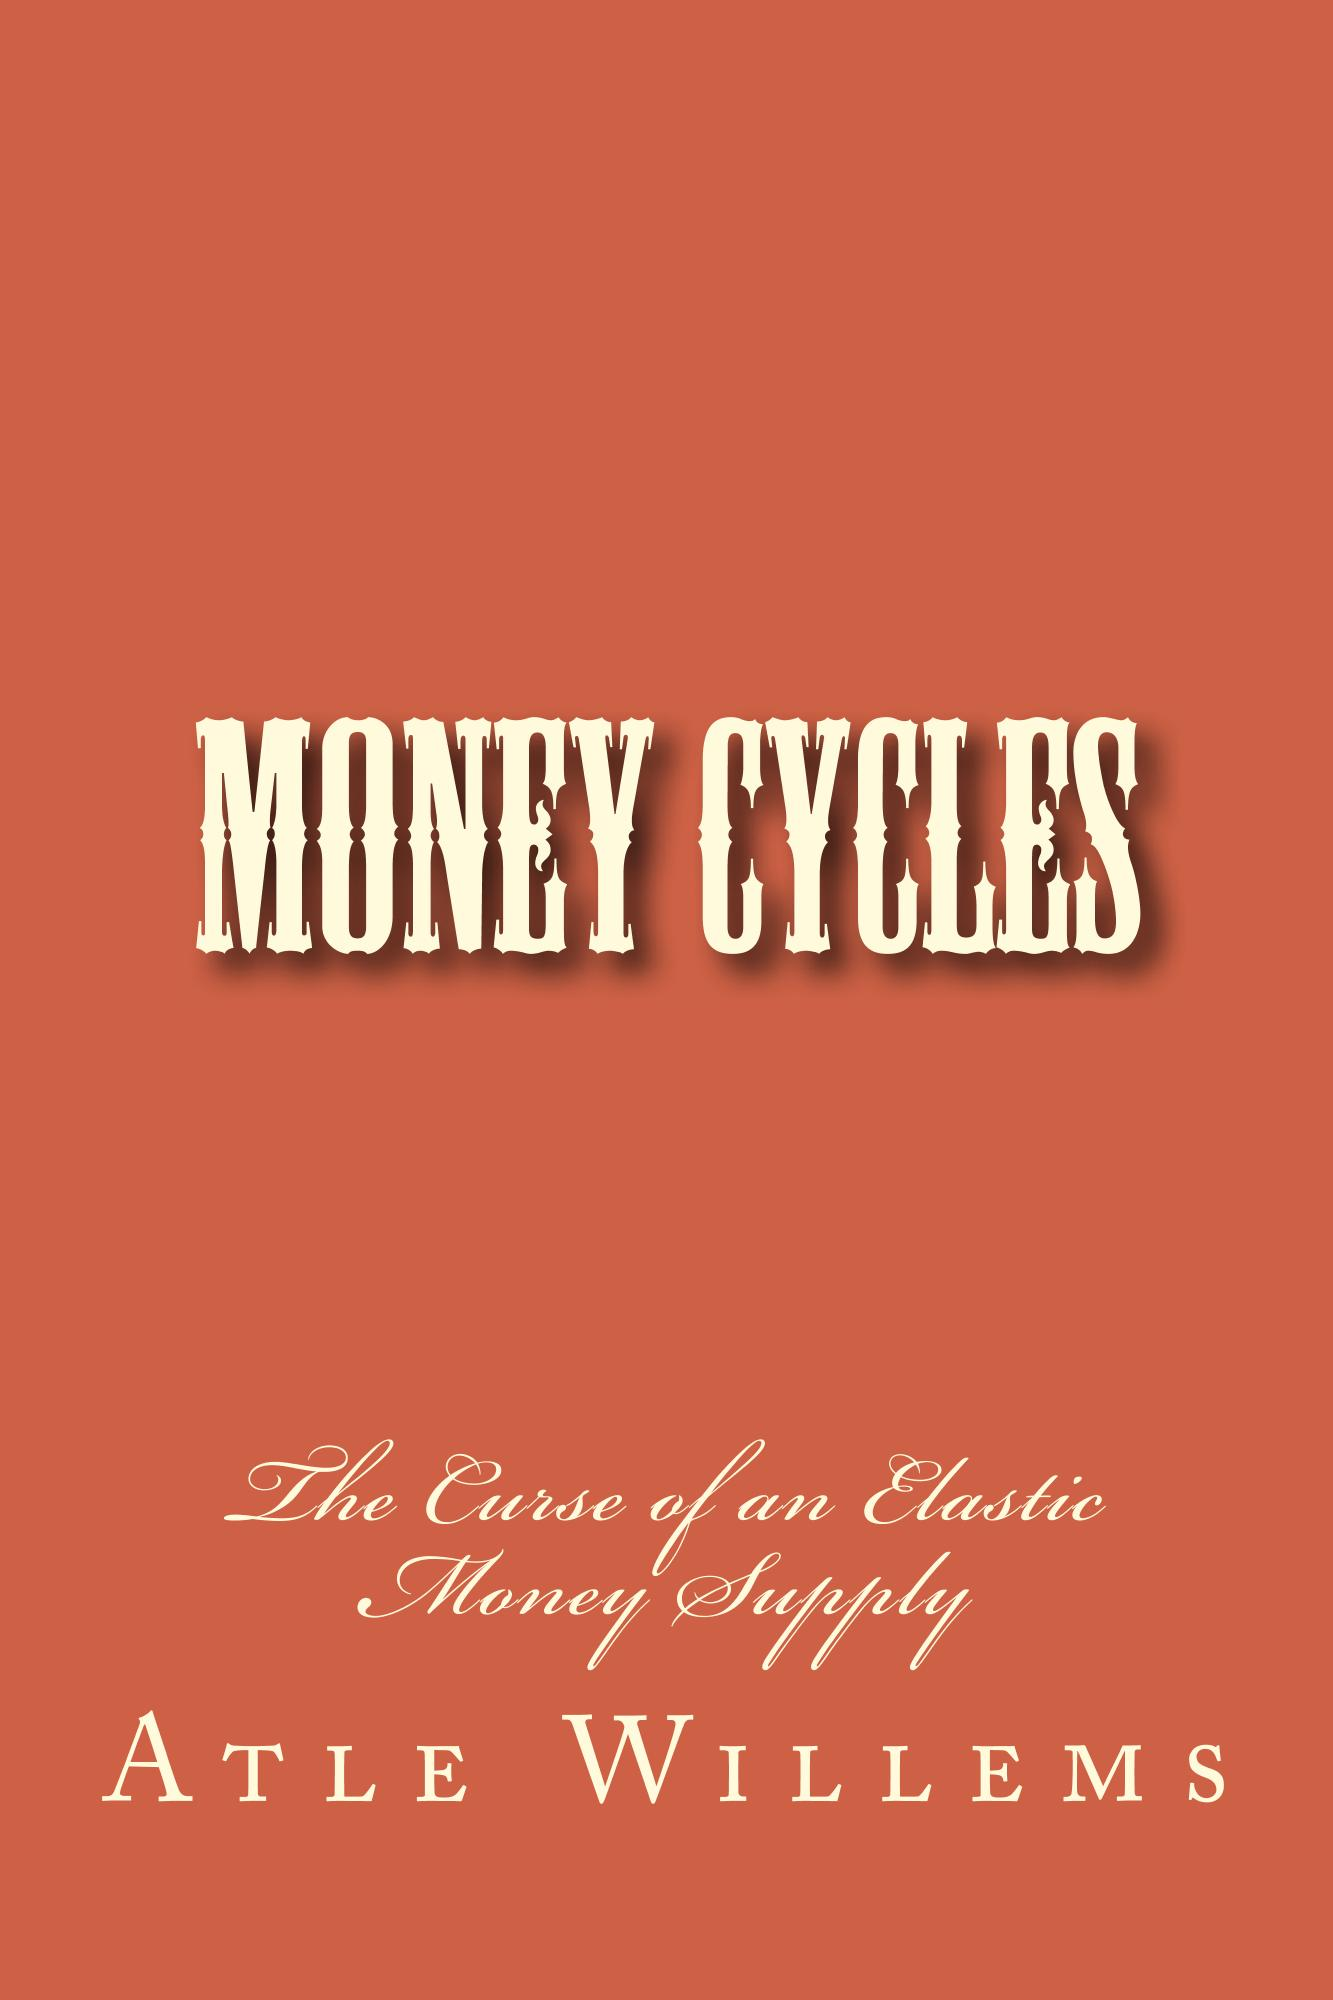 Money Cycles - The Curse of an Elastic Money Supply